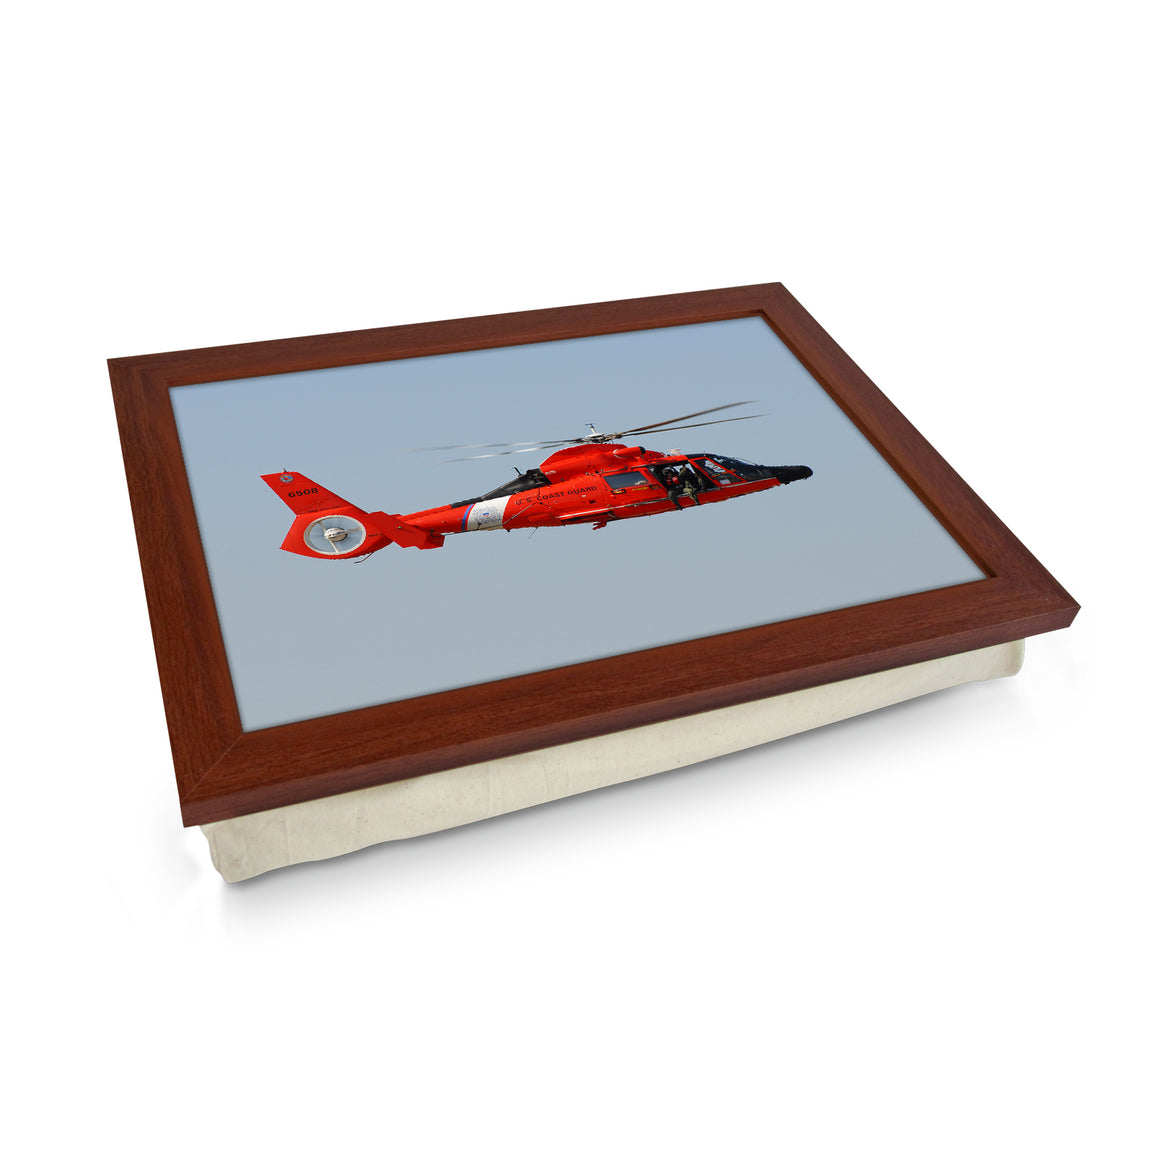 Eurocopter HH-65 Dolphin Helicopter Lap Tray - AD12372